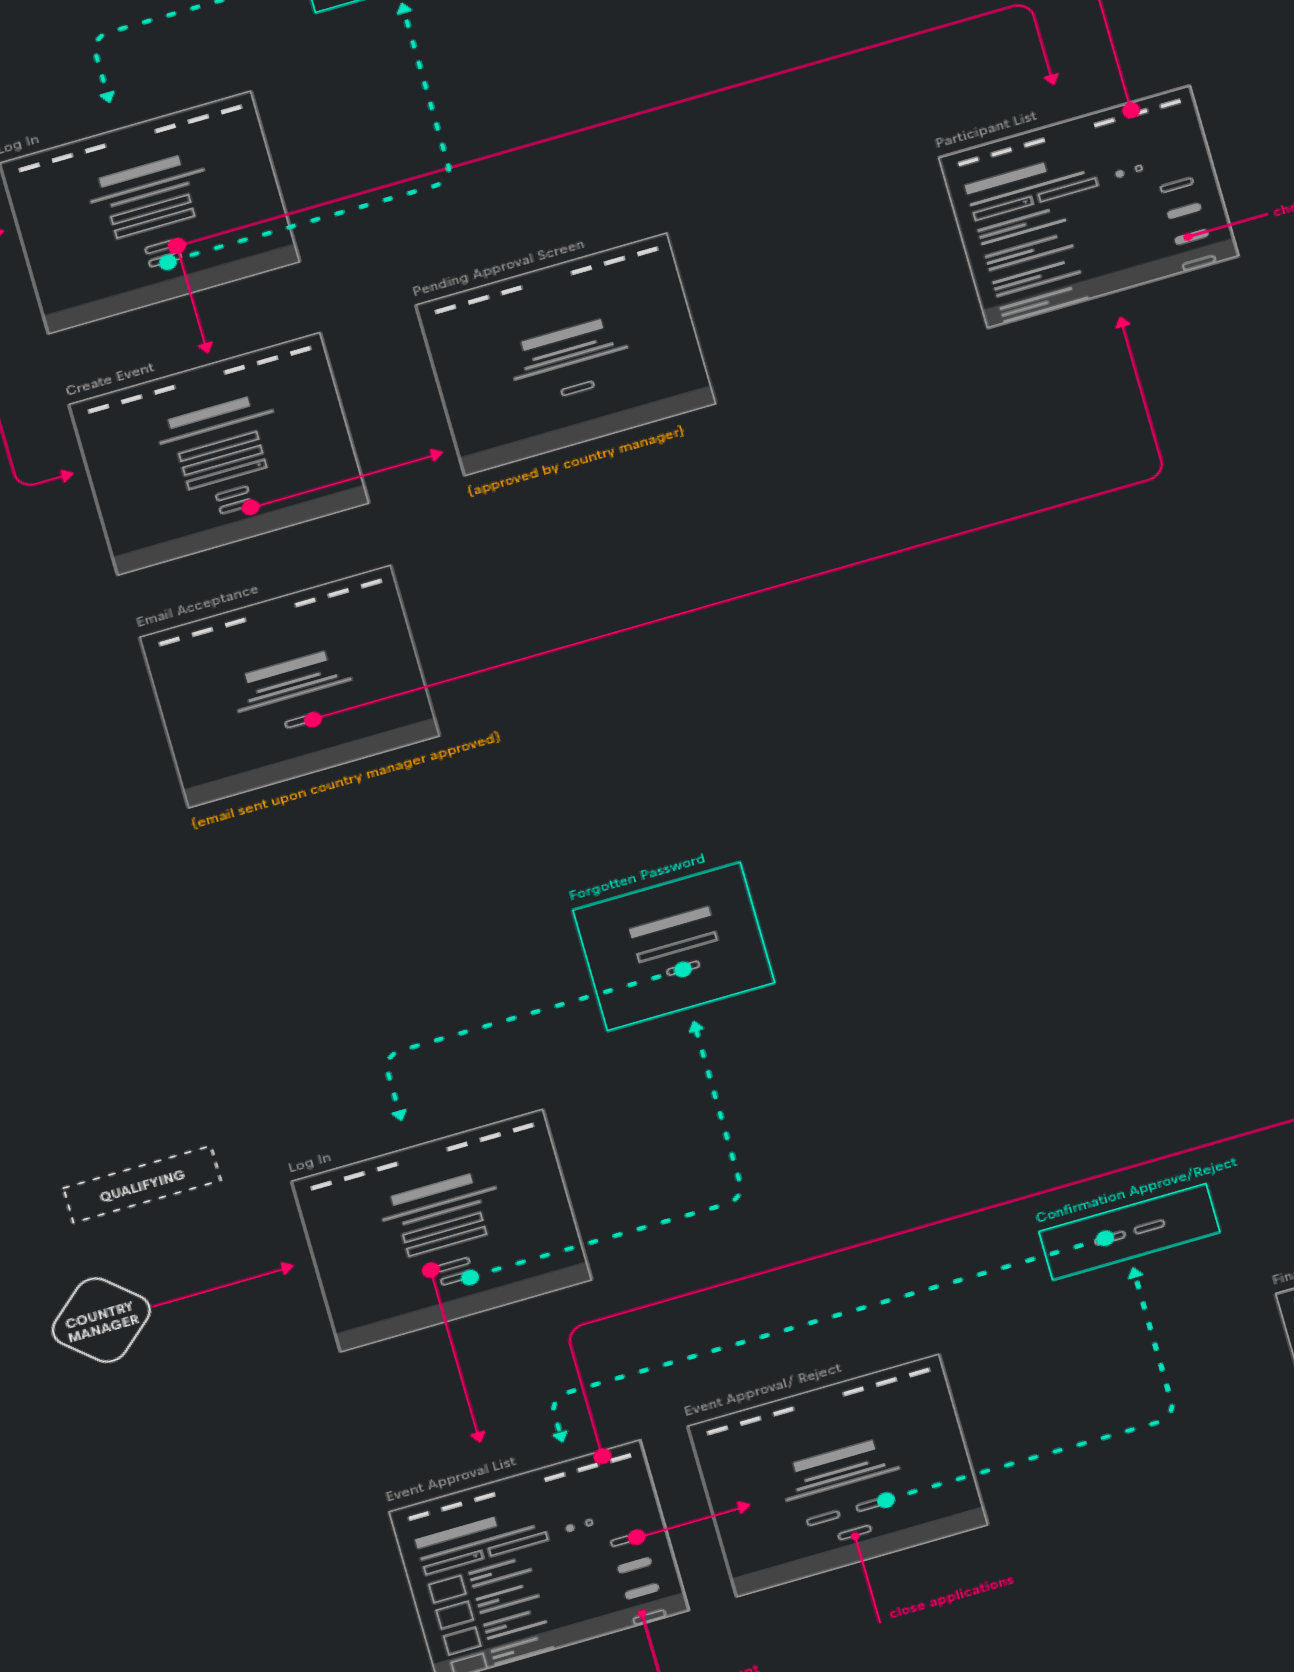 The user flow detailing the back office functionality